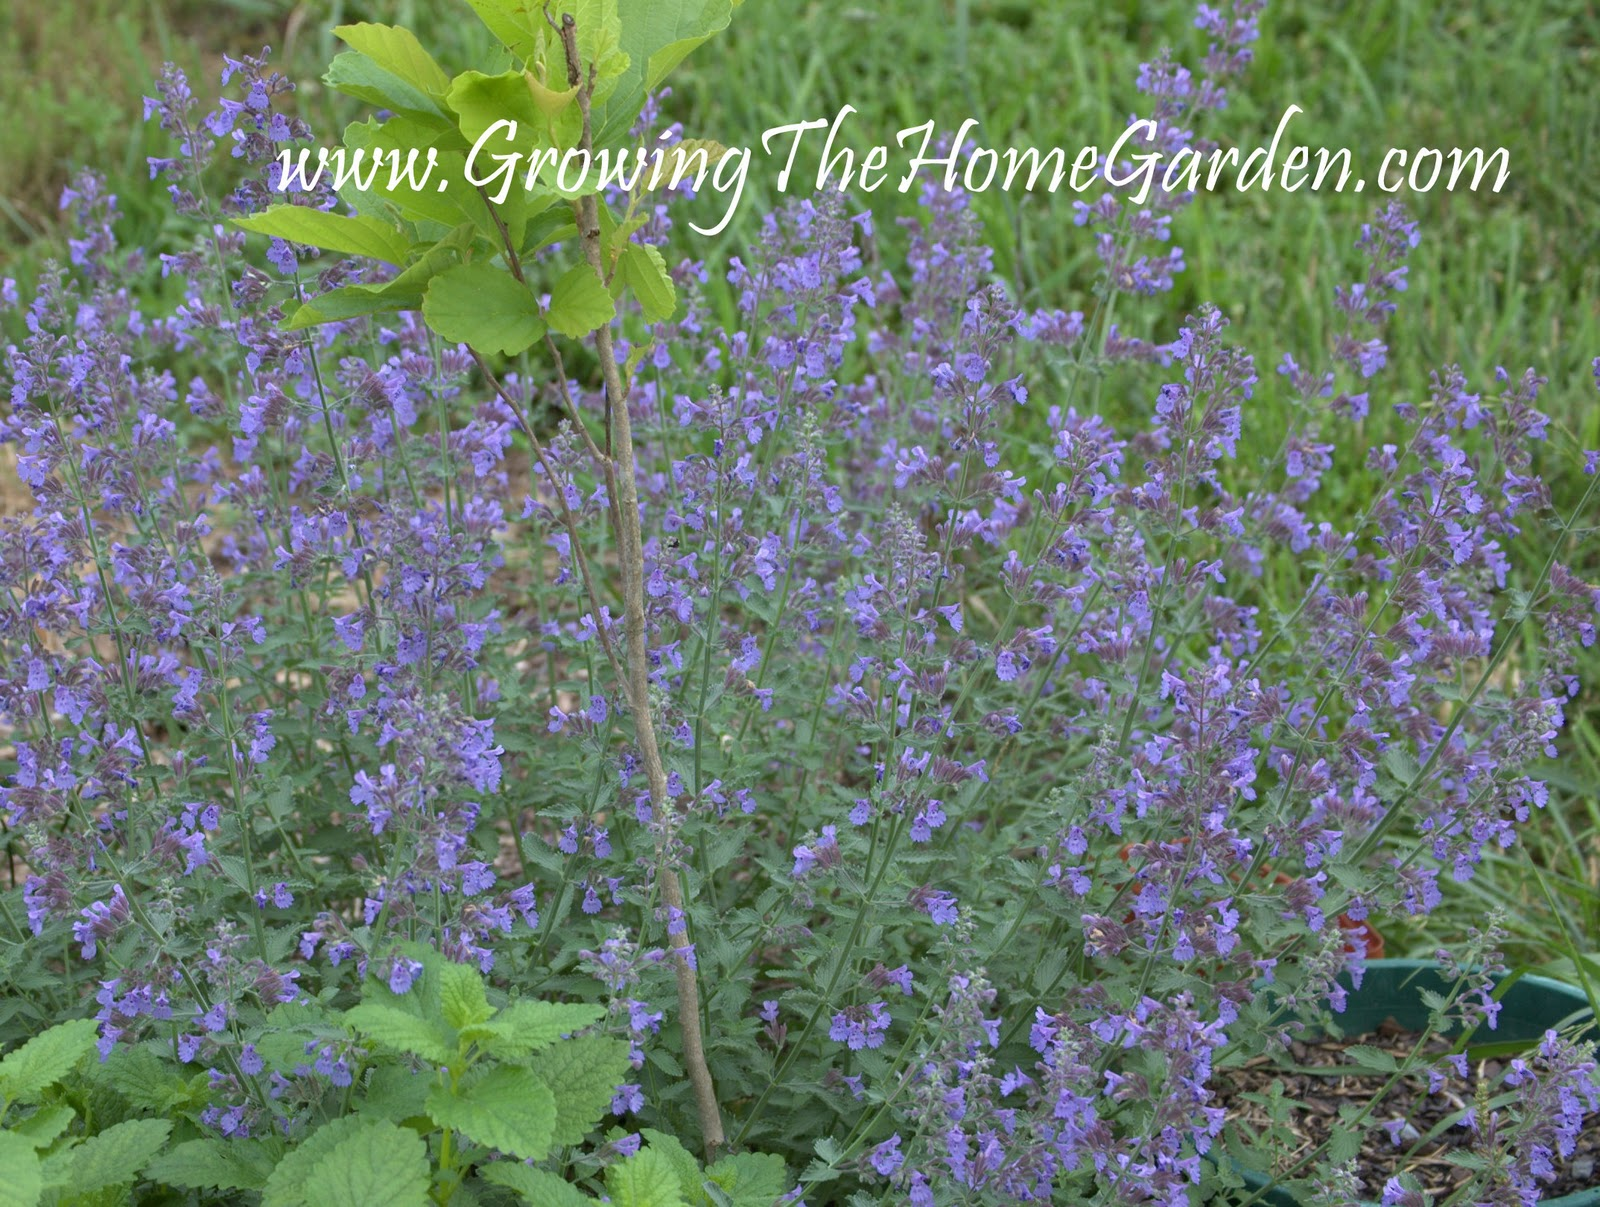 5 Easy to Grow Plants No Garden Should Be Without The Friday – What Should I Plant in My Garden